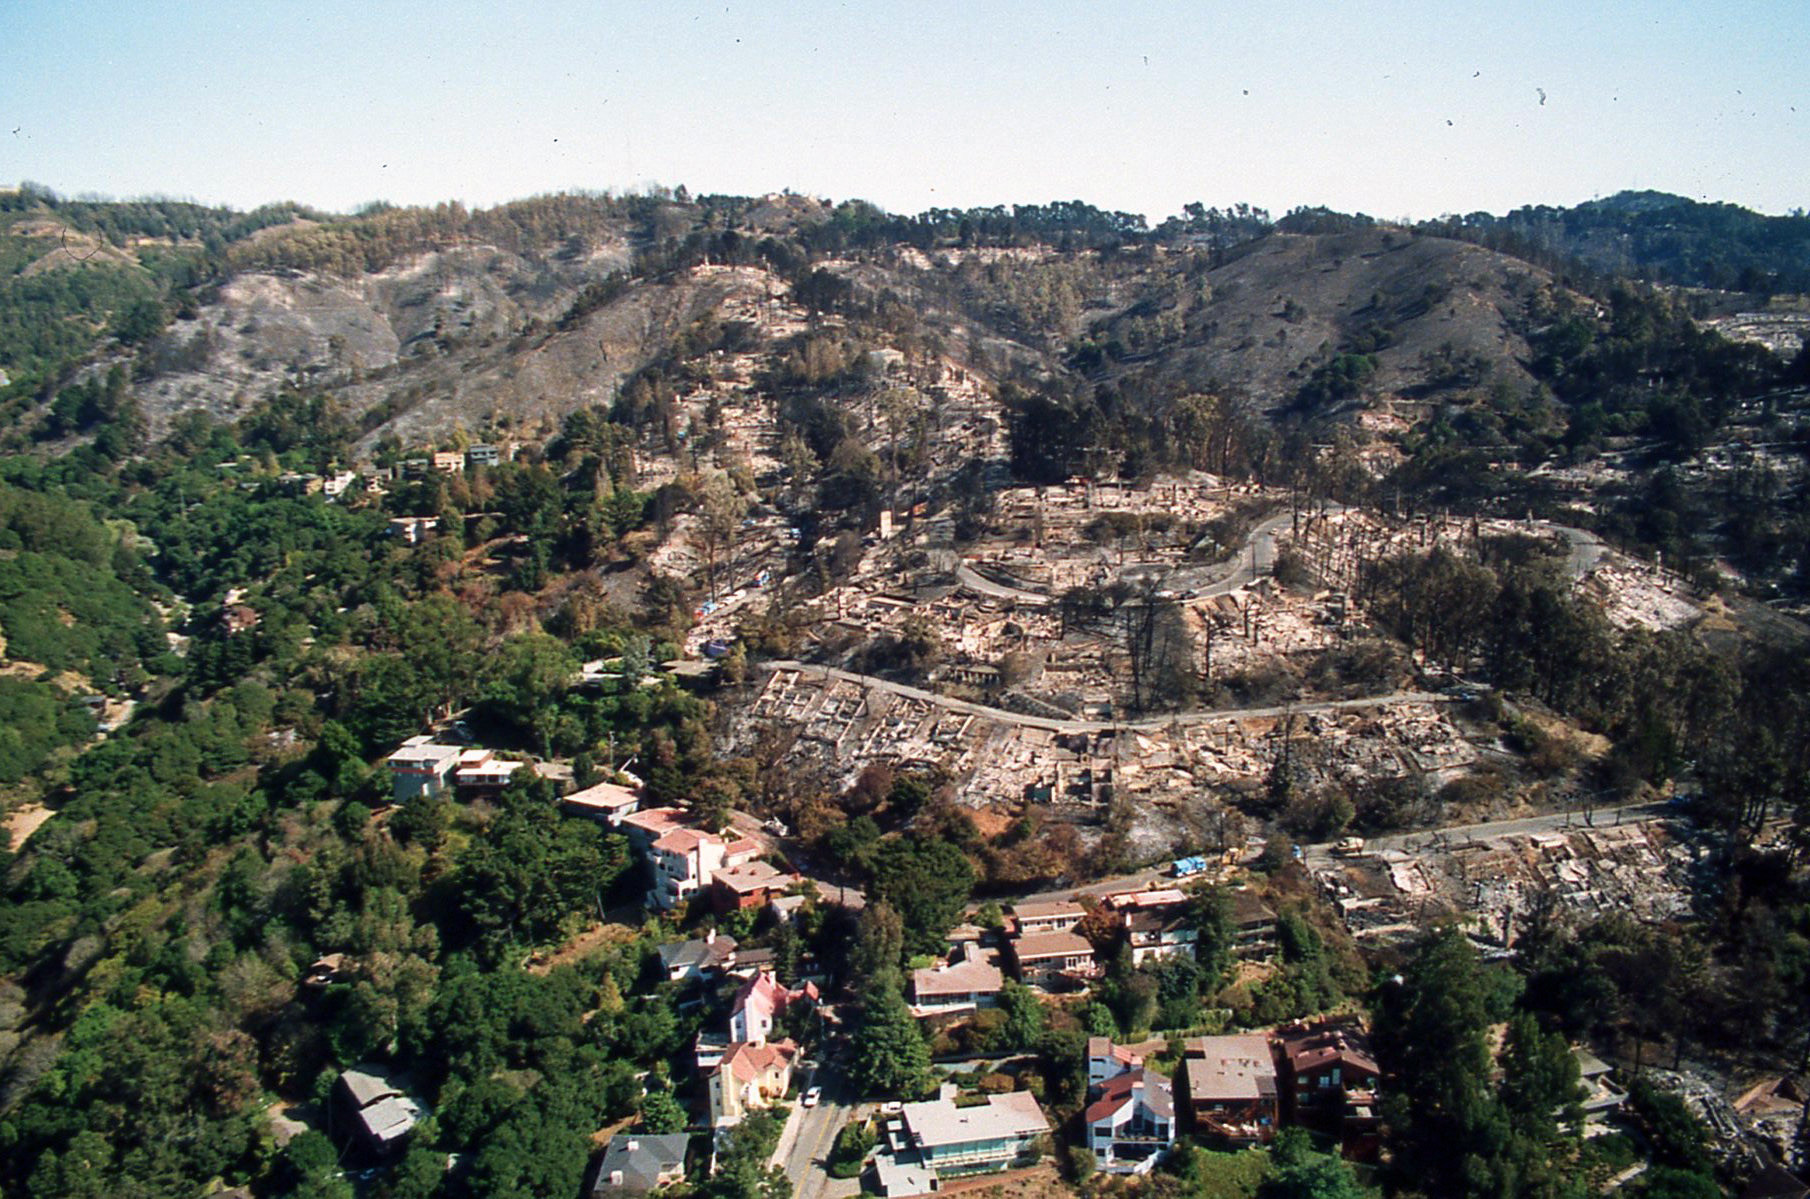 In the 1991 Firestorm, homes were lost on ridges without fuel breaks. Fire crowned in the eucalyptus grove above Gwin Canyon but did not spread into the oak/bay woodlands of Garber Park (bottom left corner of the above photo)